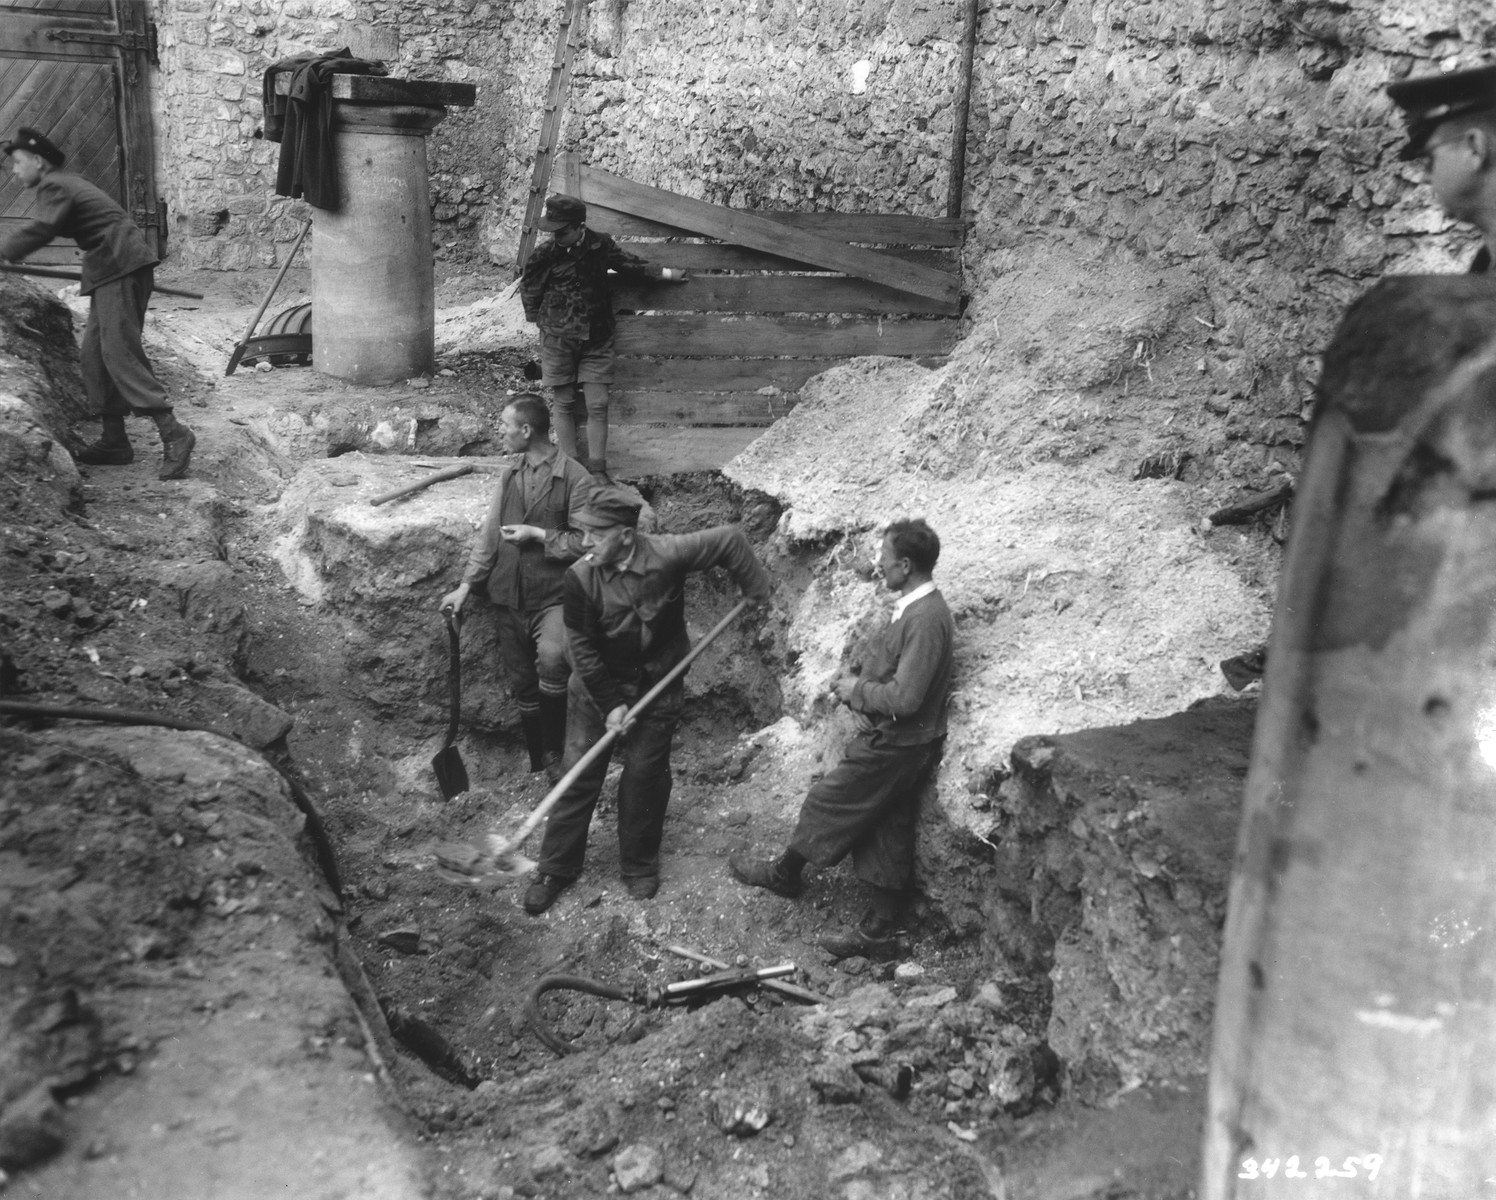 German laborers dig in the courtyard of the Veldenstein castle, formerly owned by Hermann Goering, in search of property looted by the Nazi regime.